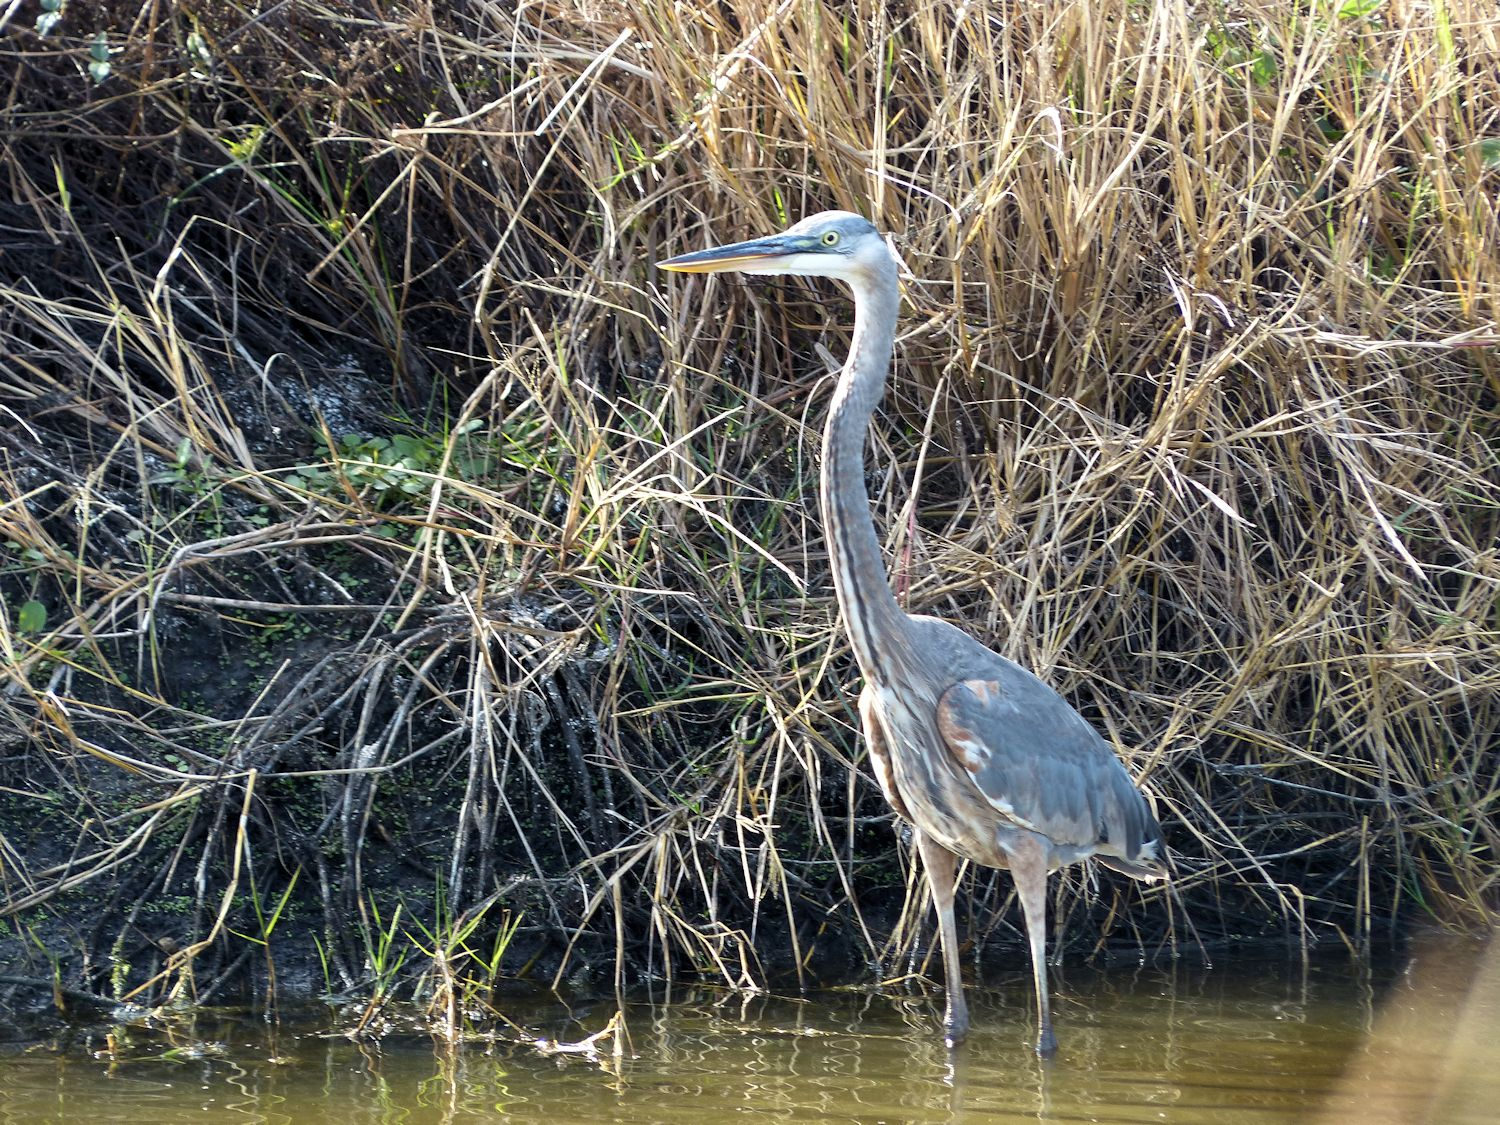 Great Blue Heron not looking like the Field Guides